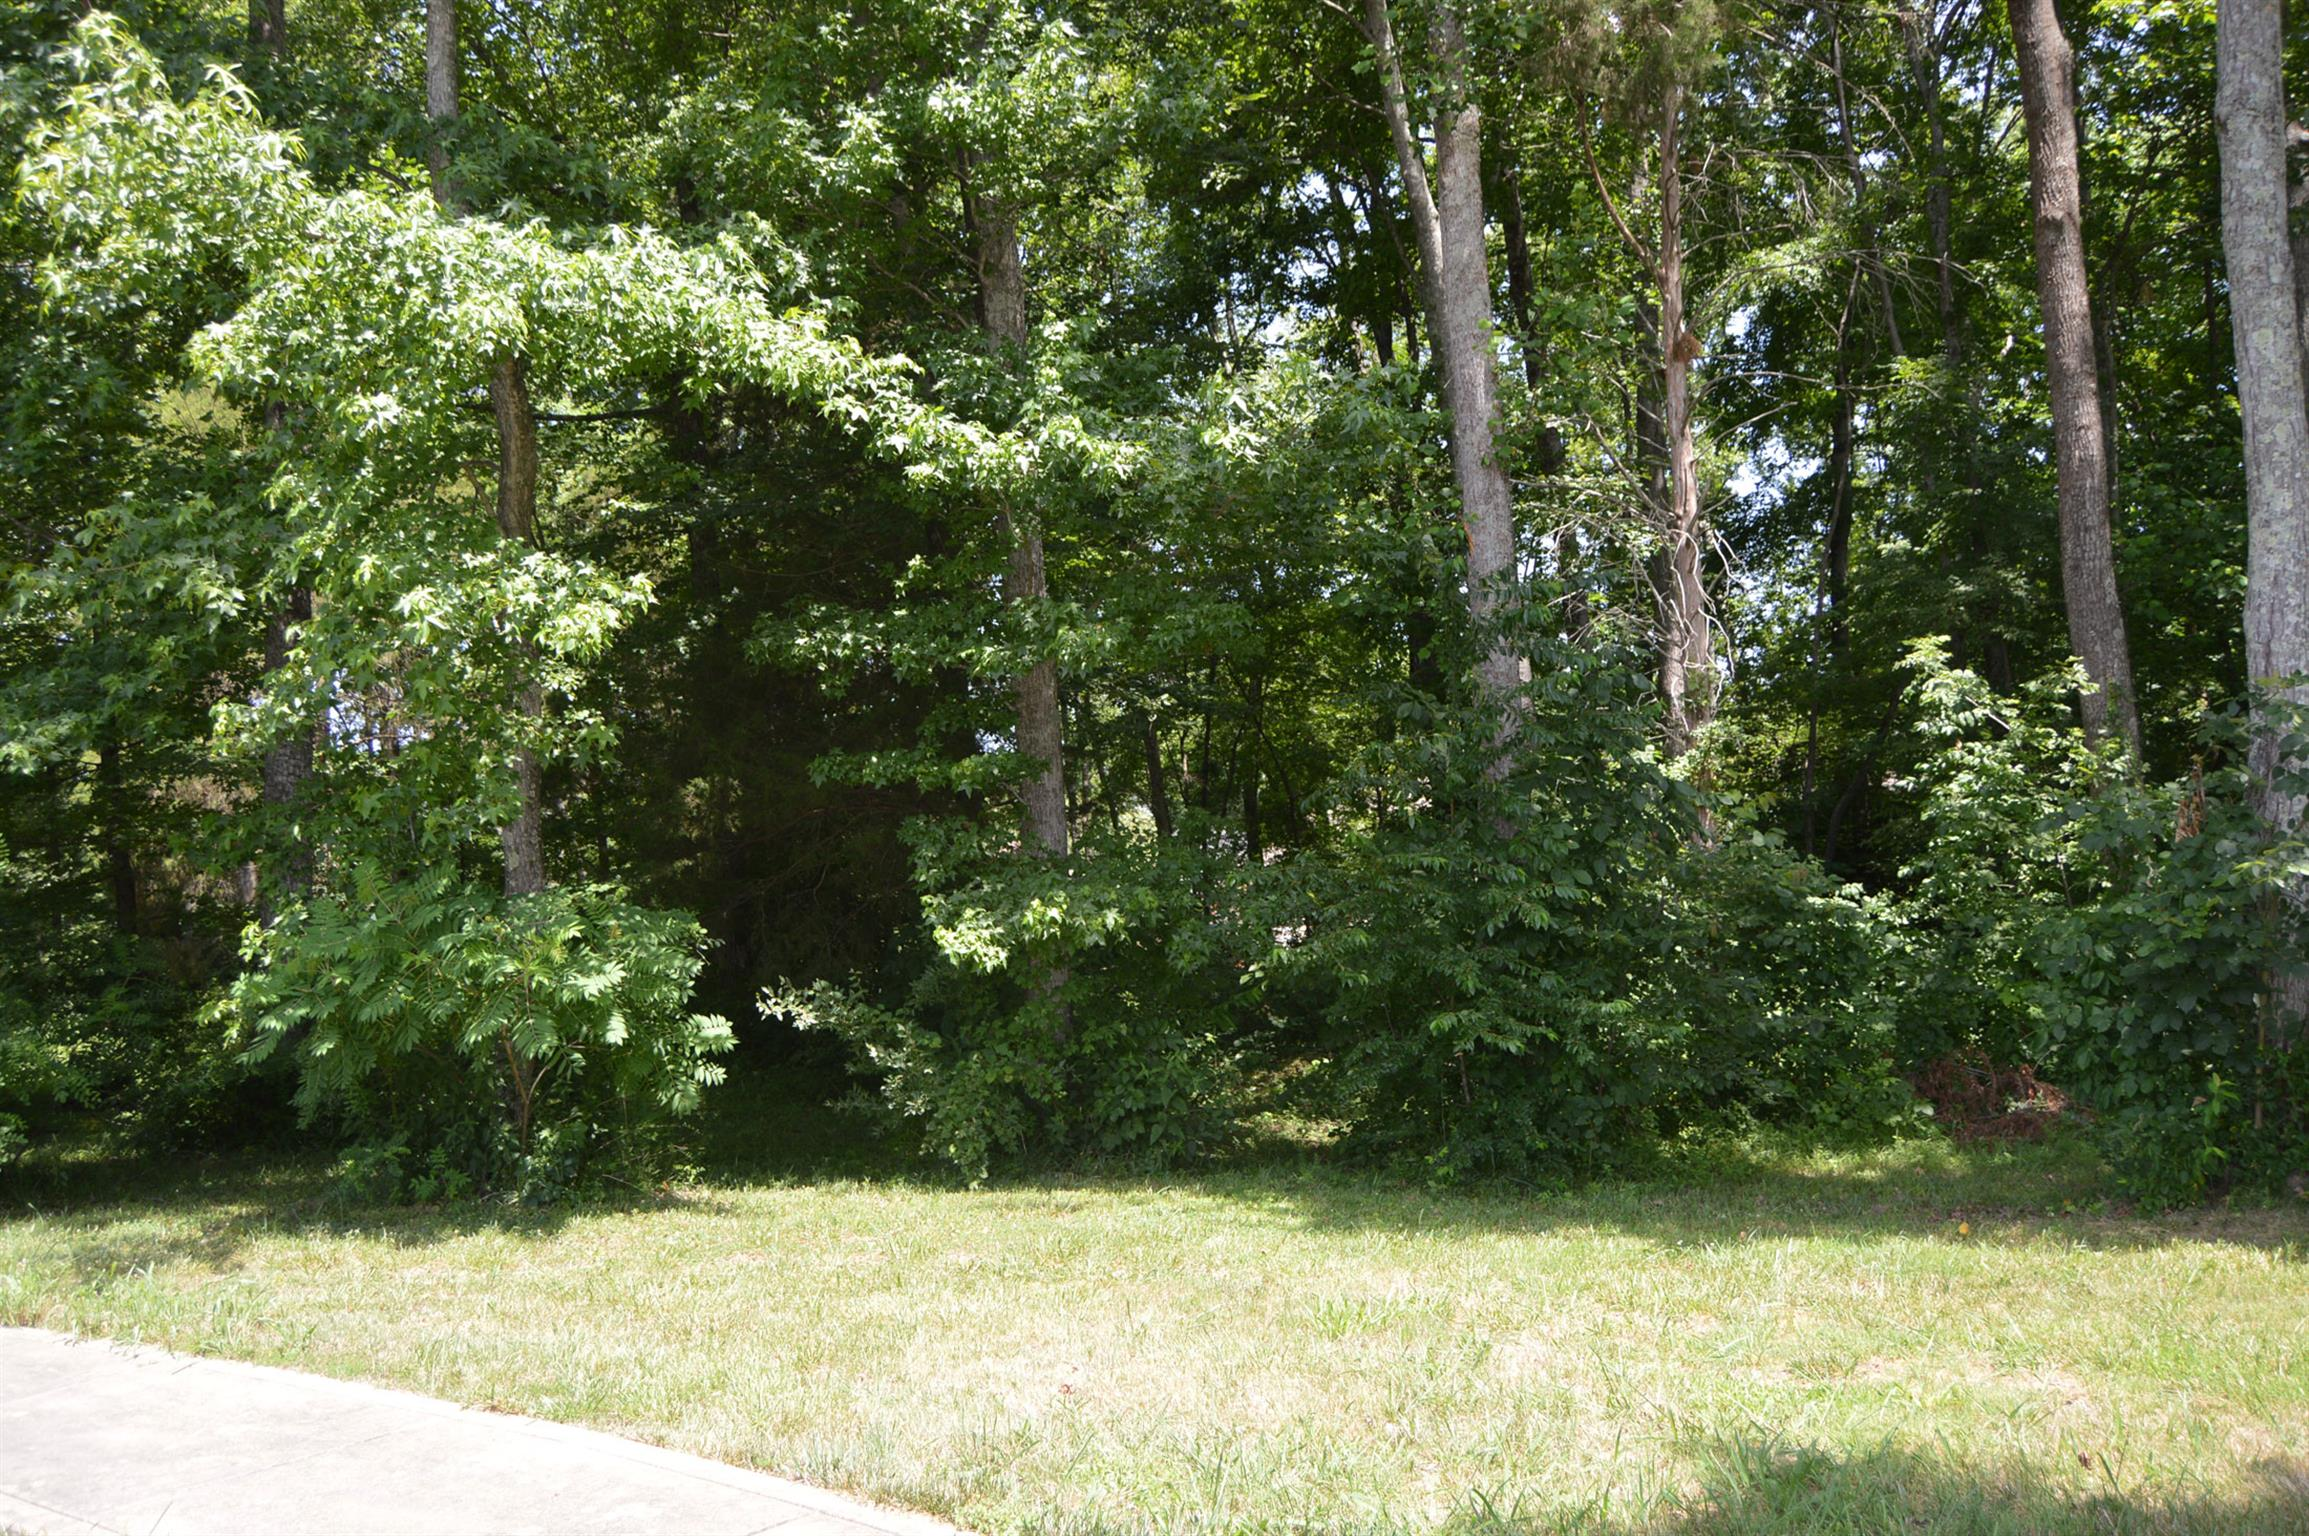 LAST WOODED LOT IN DANFORD/ONE OF CLARKSVILLES PREMIER DEVELOPMENTS/LARGEST LOT IN DANFORD/NO CITY TAXES/PRIVATE PARK FOR RESIDENTS/UNDERGROUND UTILITIES/$40 HOA PER MONTH/SOME OWNER FINANCING POSSIBLE/RESTRICTIONS AT OFFICE